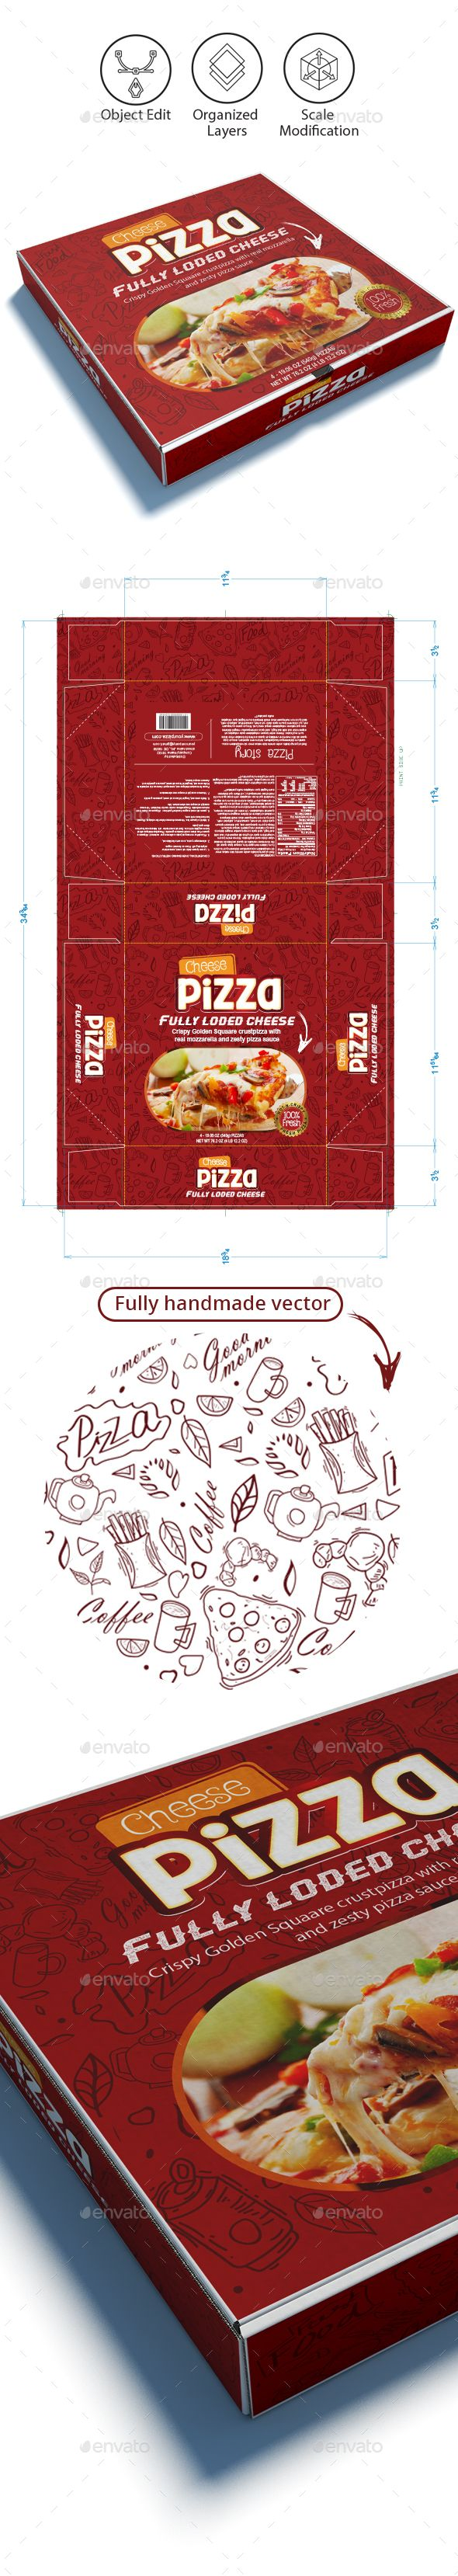 658 best package images on pinterest design packaging cosmetic